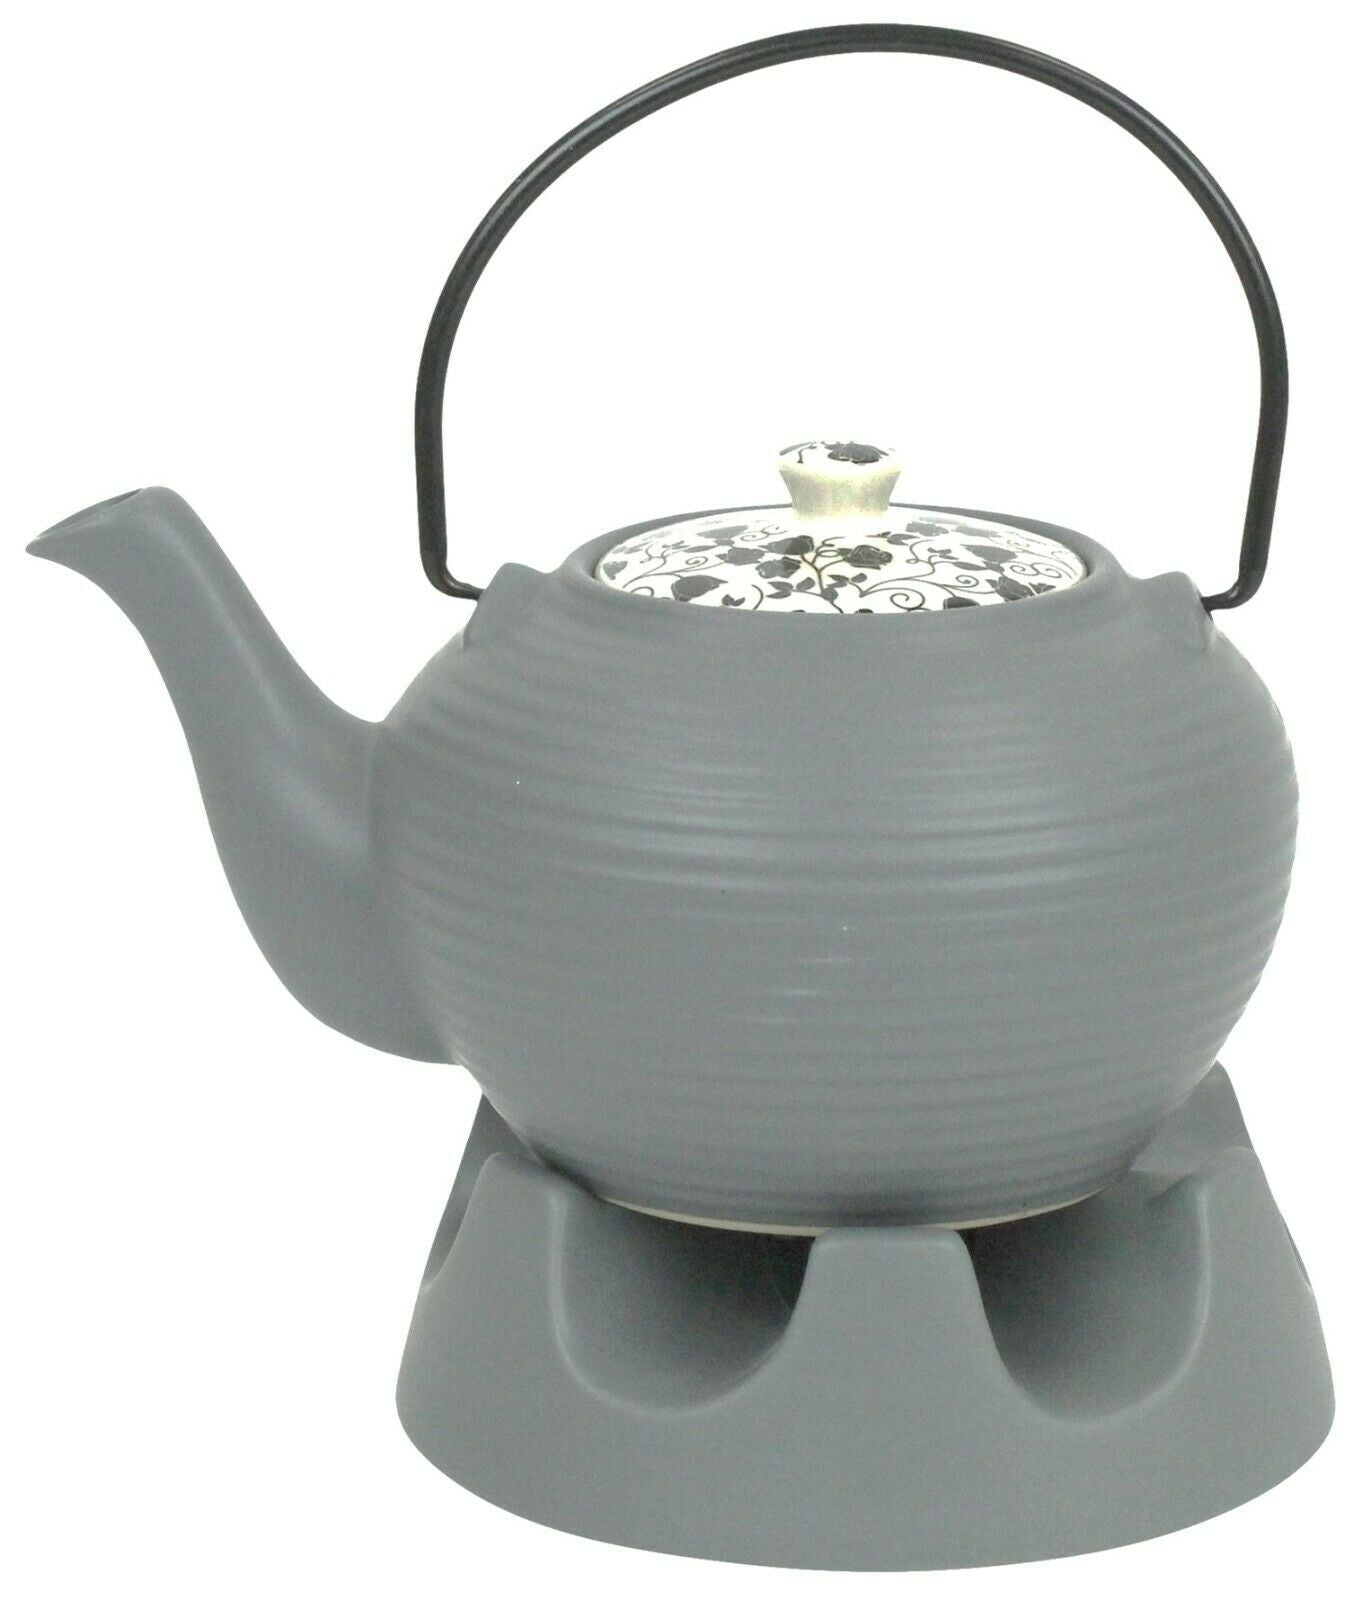 Japanese Teapot Grey Lines With Teapot Warmer Ceramic Jameson & Tailor 6 Cup